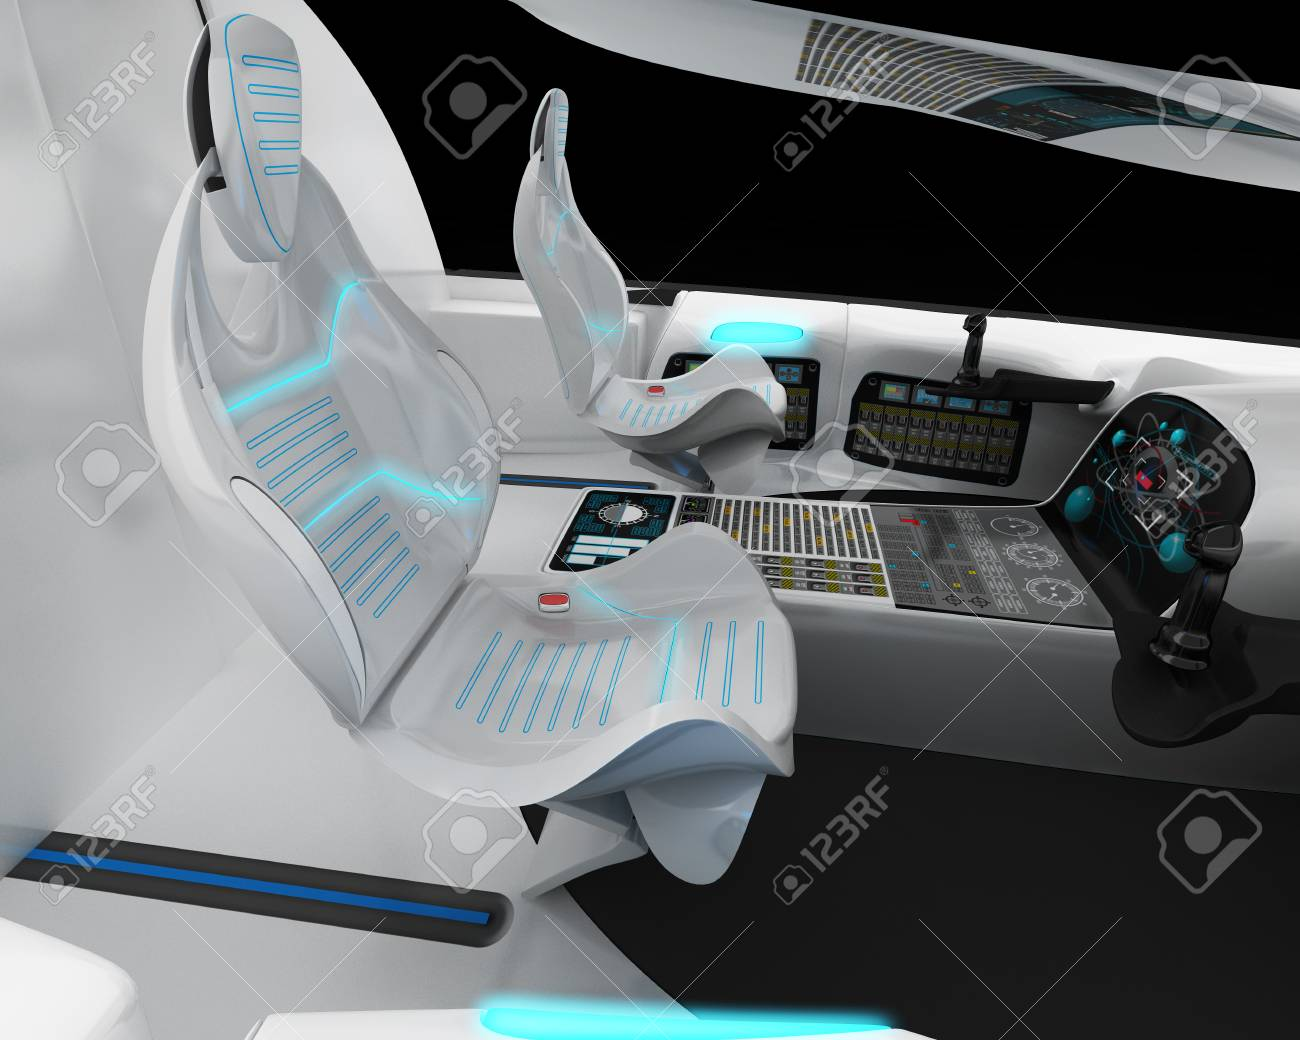 Futuristic Interior Design Of The Pilot Cabin Supersonic Aircraft Stock Photo Picture And Royalty Free Image Image 102630421